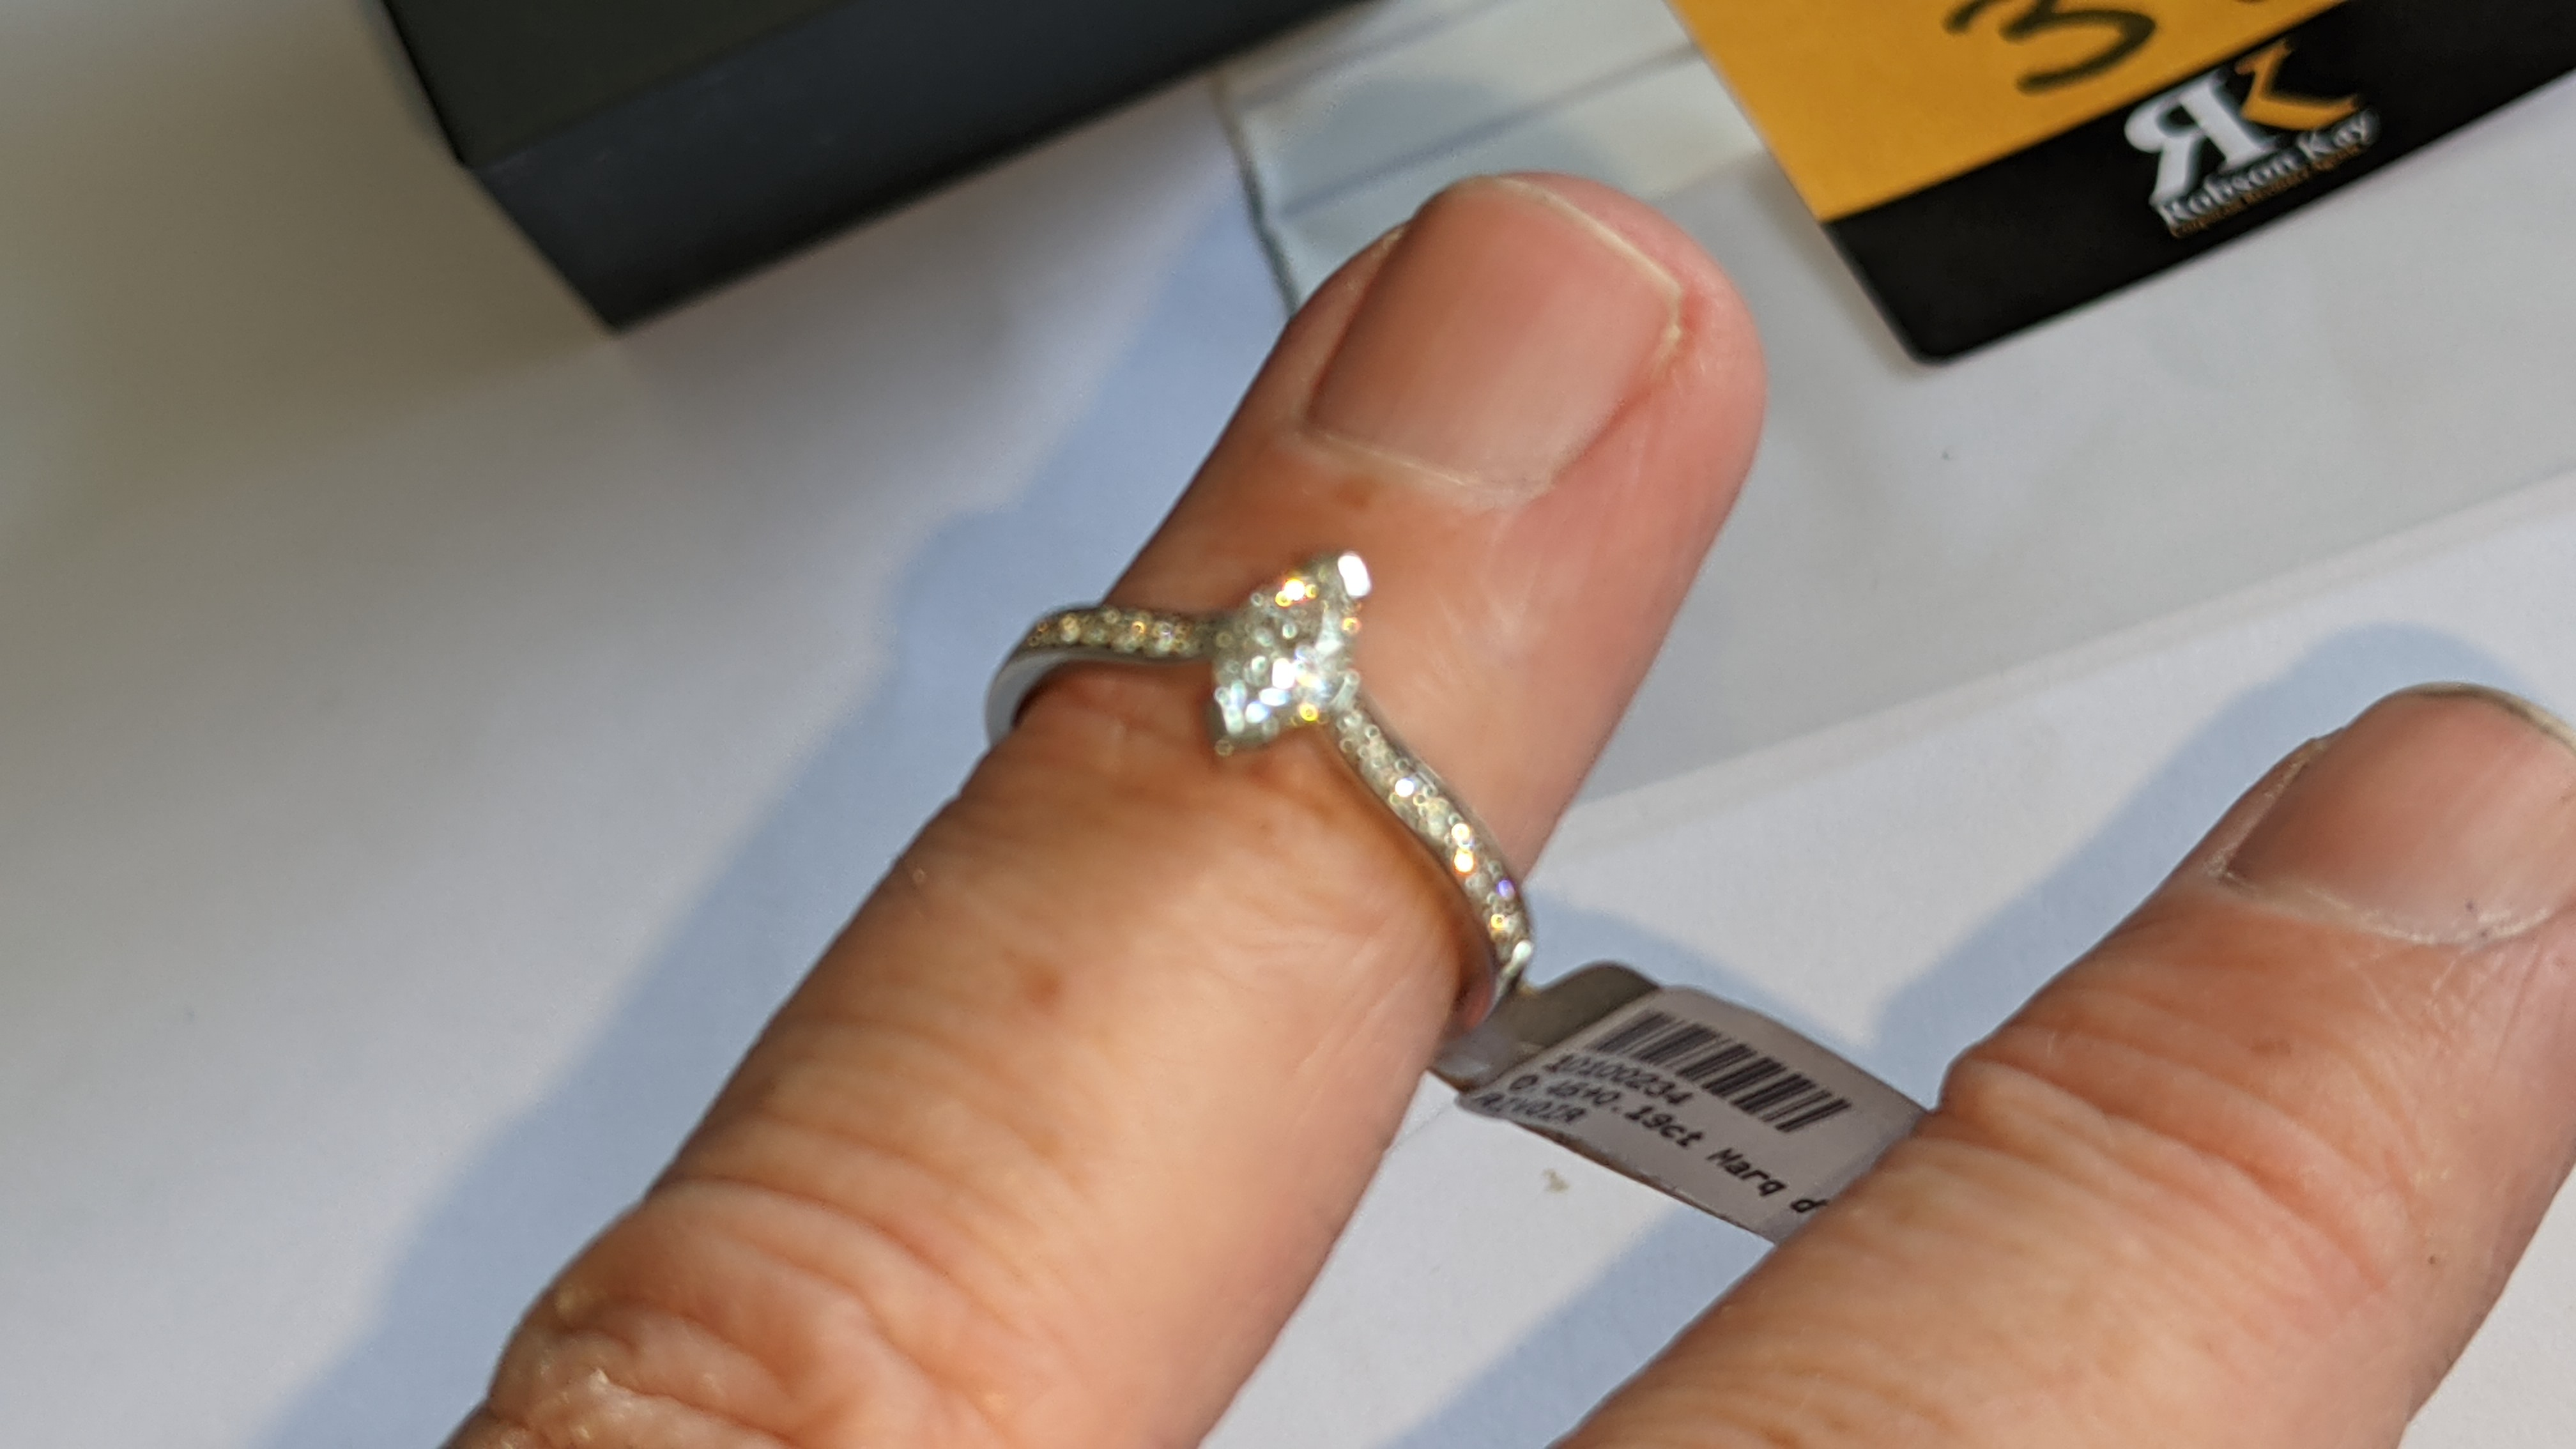 Platinum 950 ring with marquise shaped central diamond plus diamonds on the shoulders either side, t - Image 13 of 16